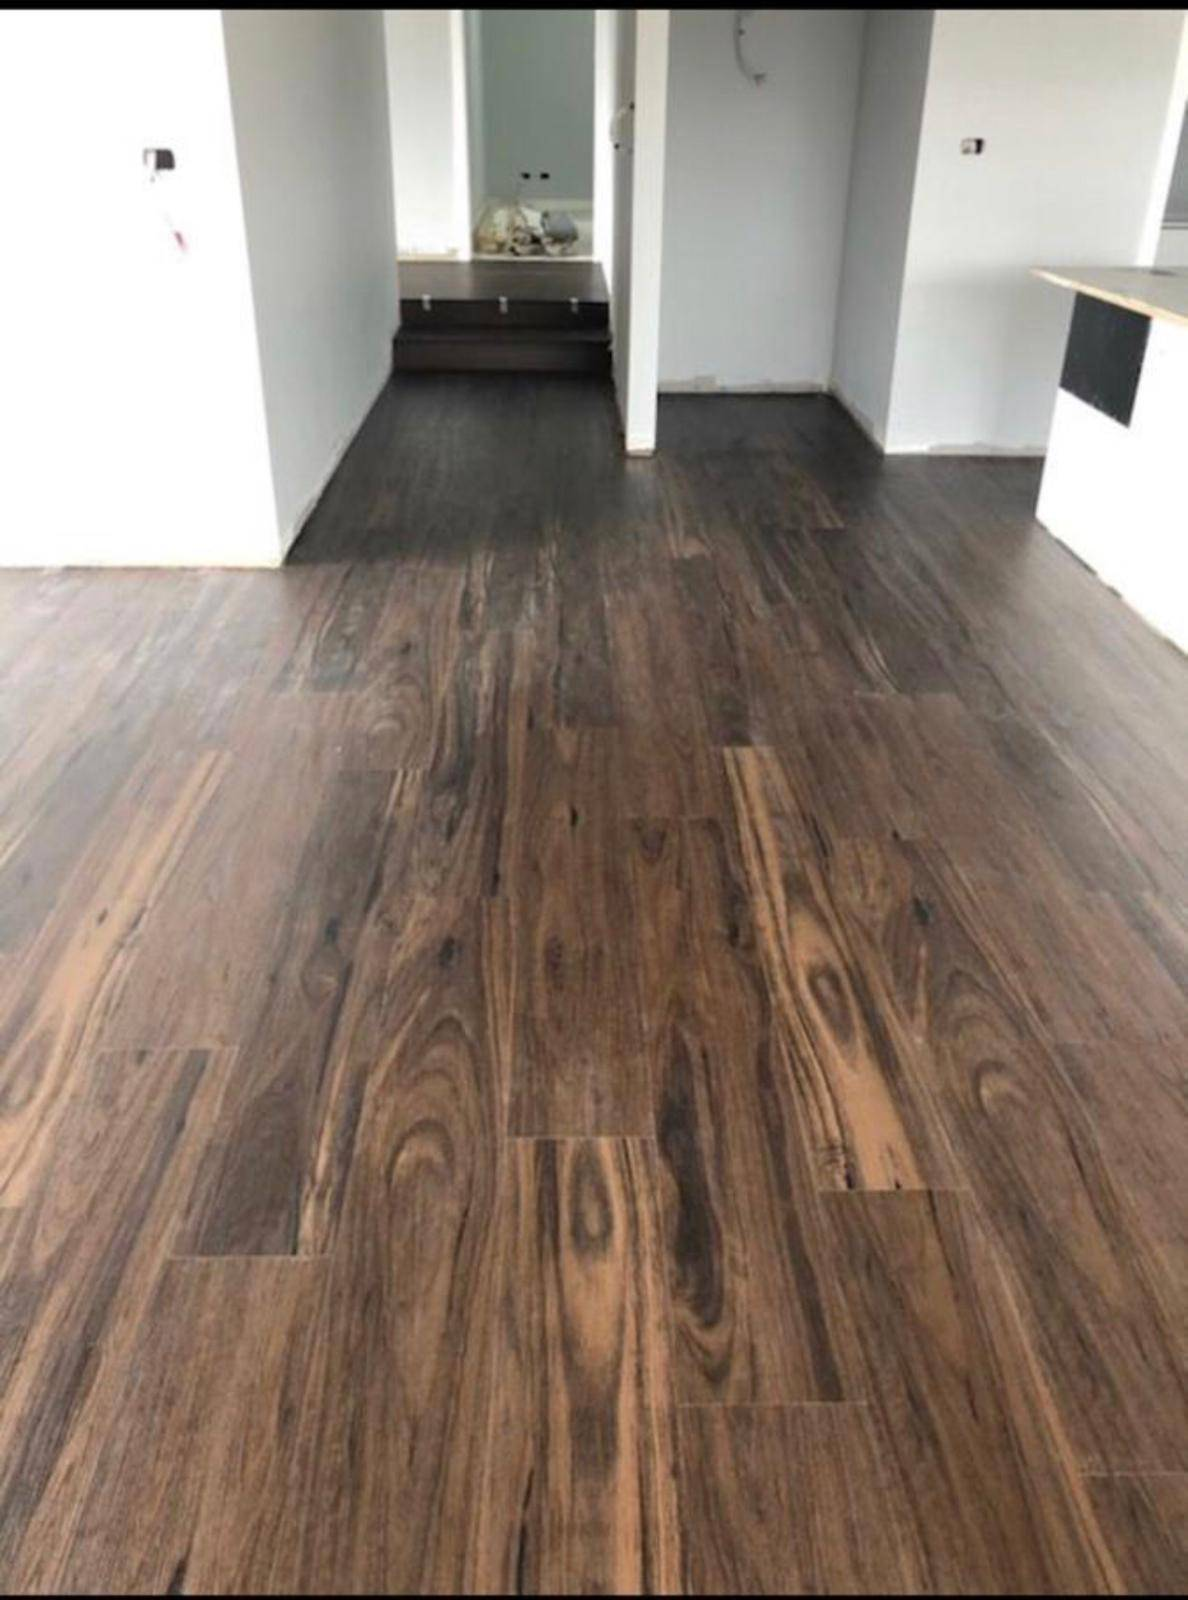 Hybrid Flooring vs Luxury Vinyl Plank